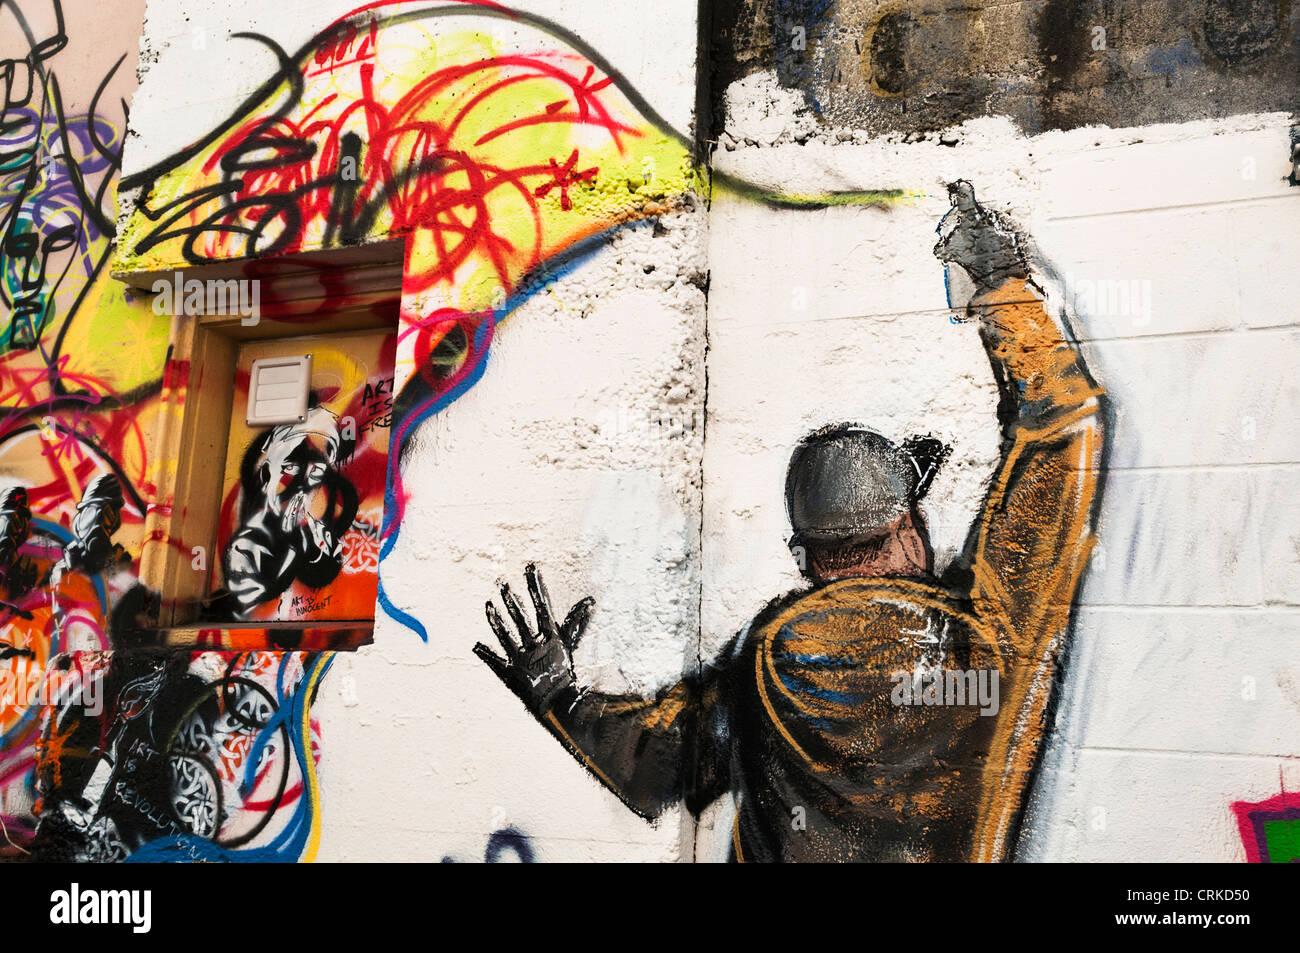 Graffiti of graffiti artist spray painting a wall in an alley in downtown aberdeen washington